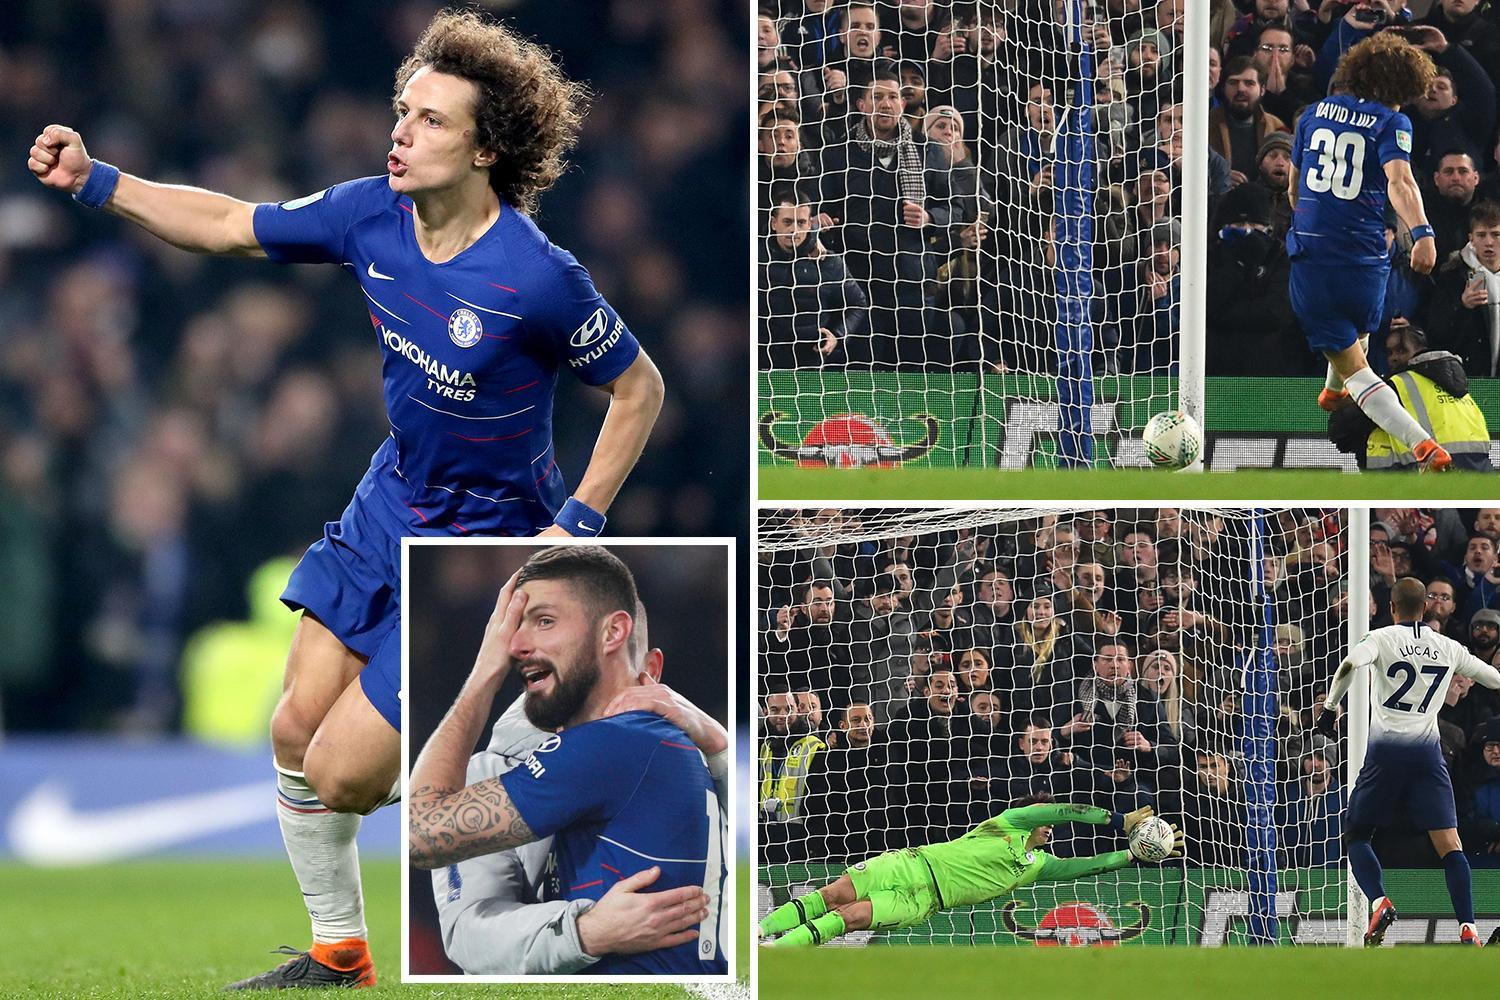 Chelsea through to Carabao Cup final after dramatic penalty shoot-out win over Tottenham